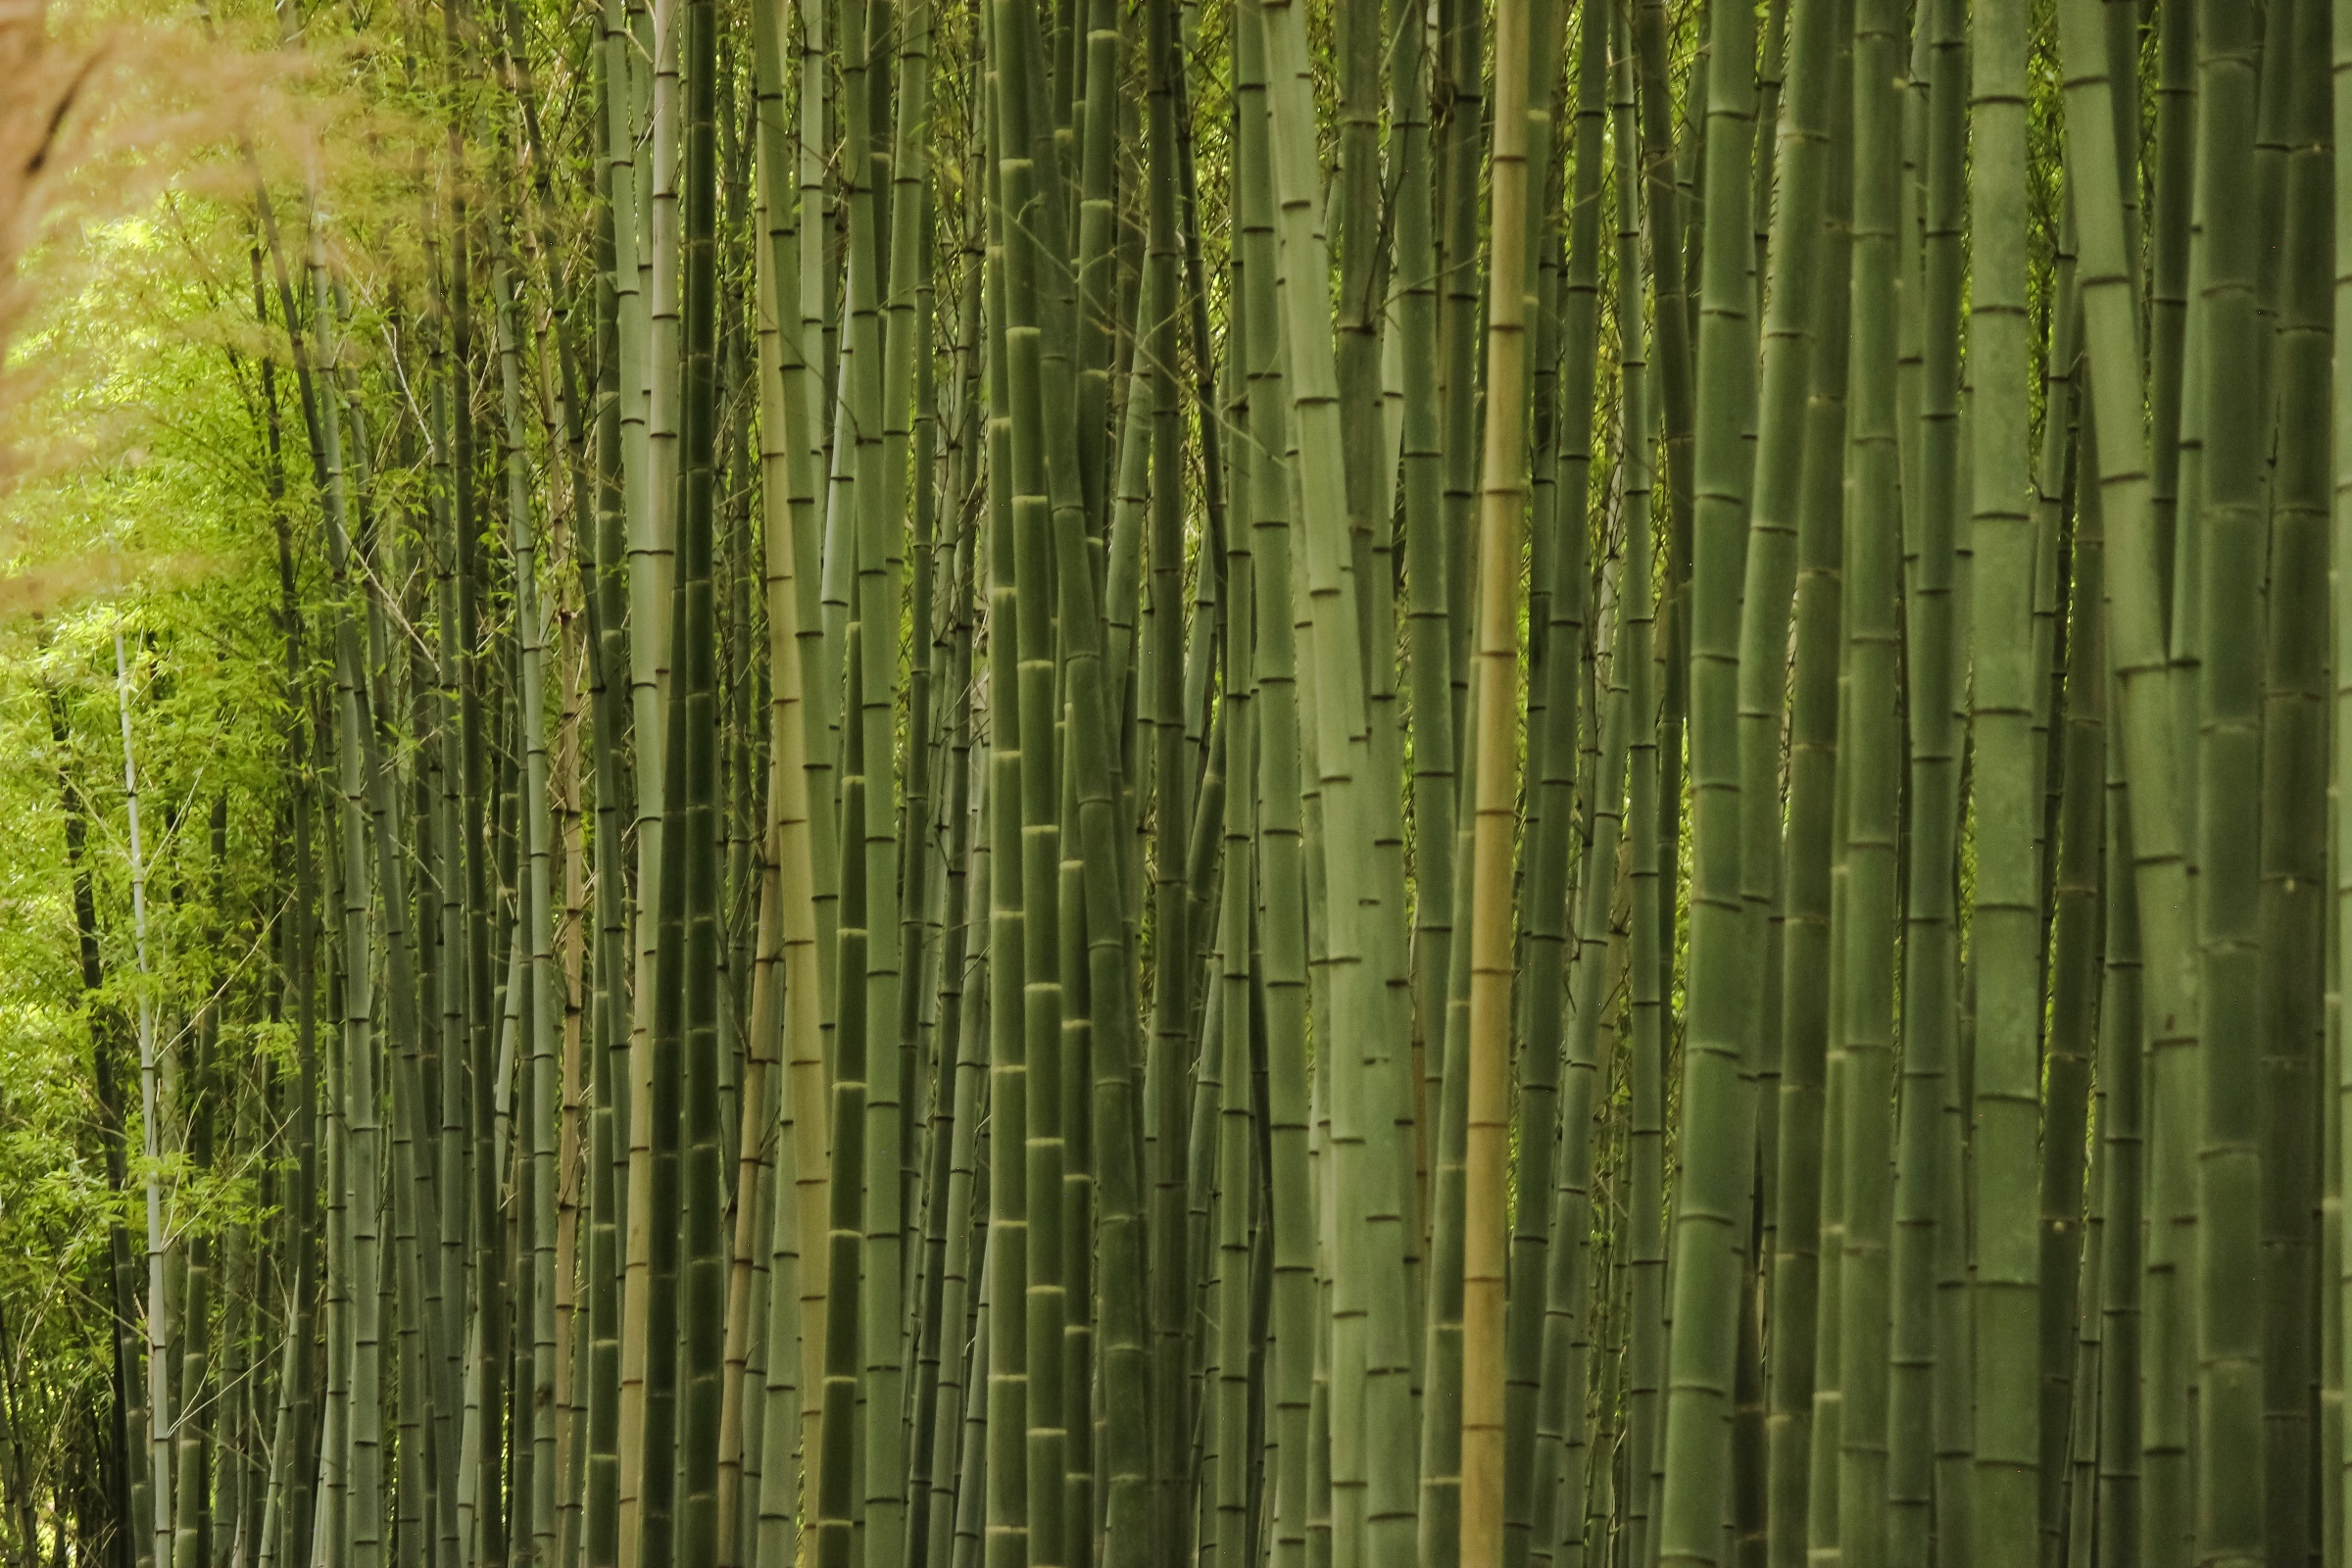 bamboo in a grove